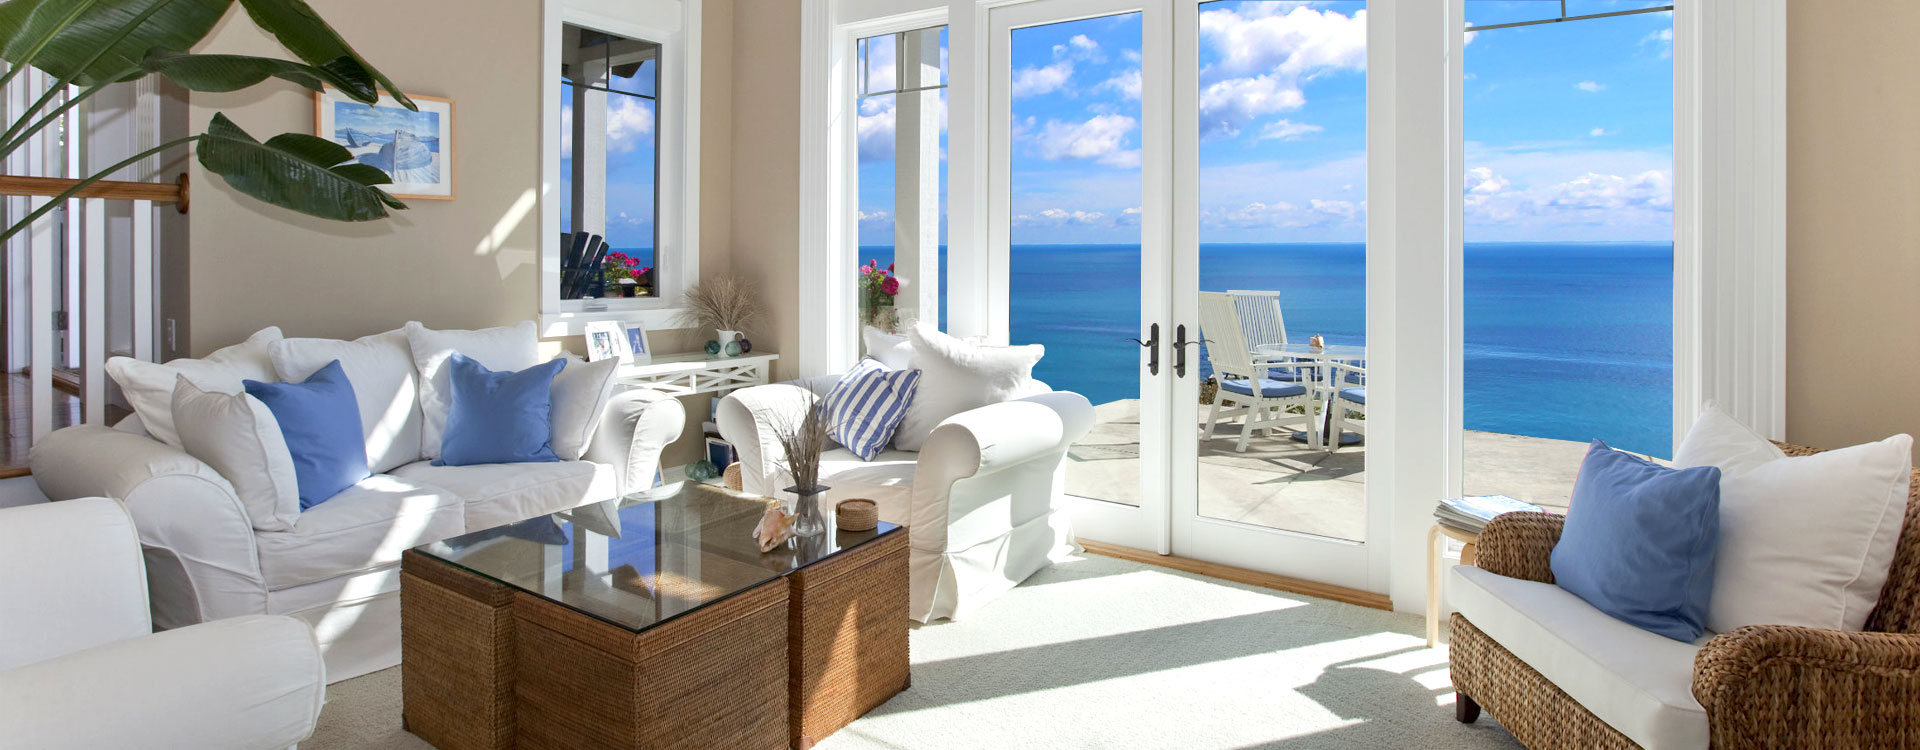 Living Room Interior with Ocean View